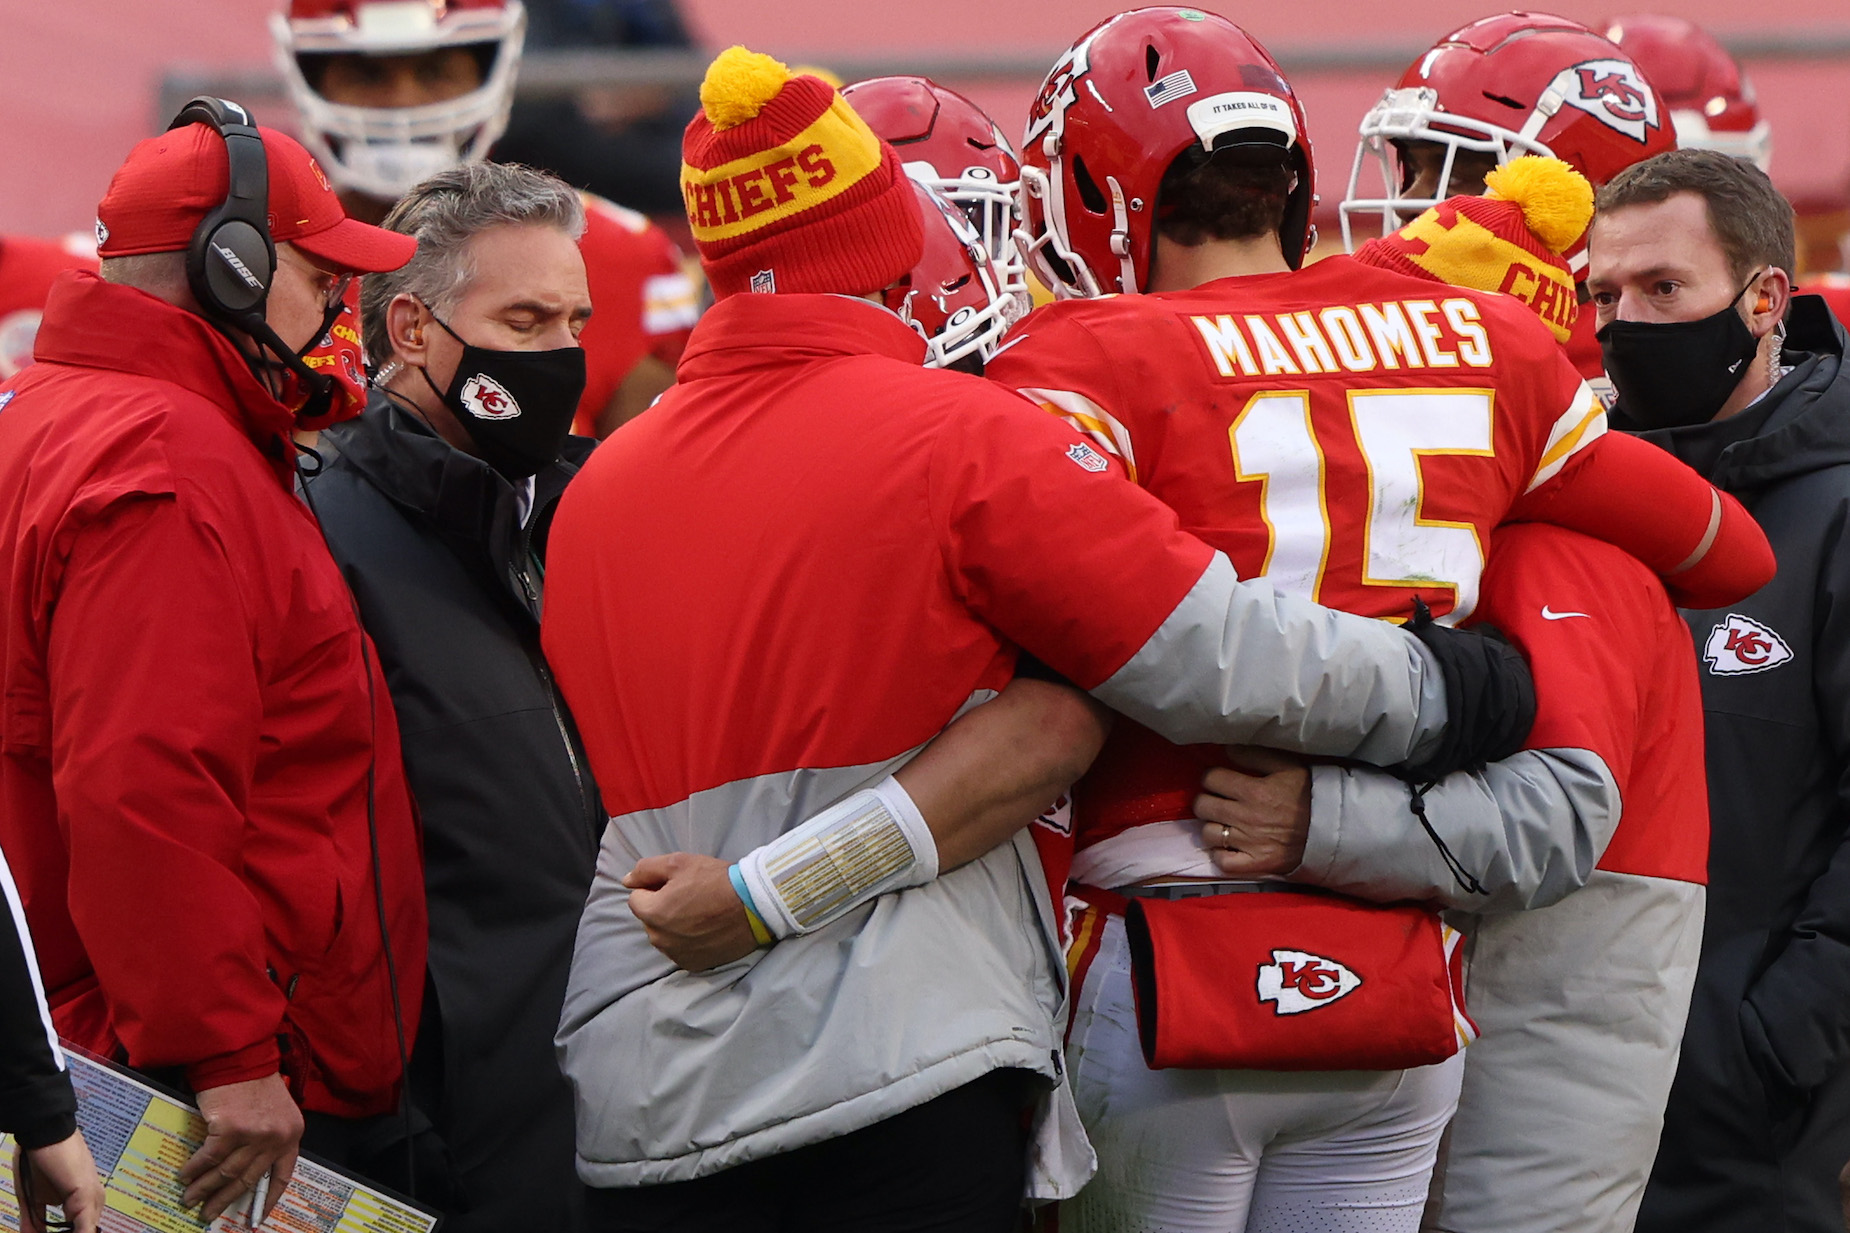 Patrick Mahomes has cleared concussion protocol, but the Kansas City Chiefs quarterback still has a nagging injury ahead of the AFC Championship.